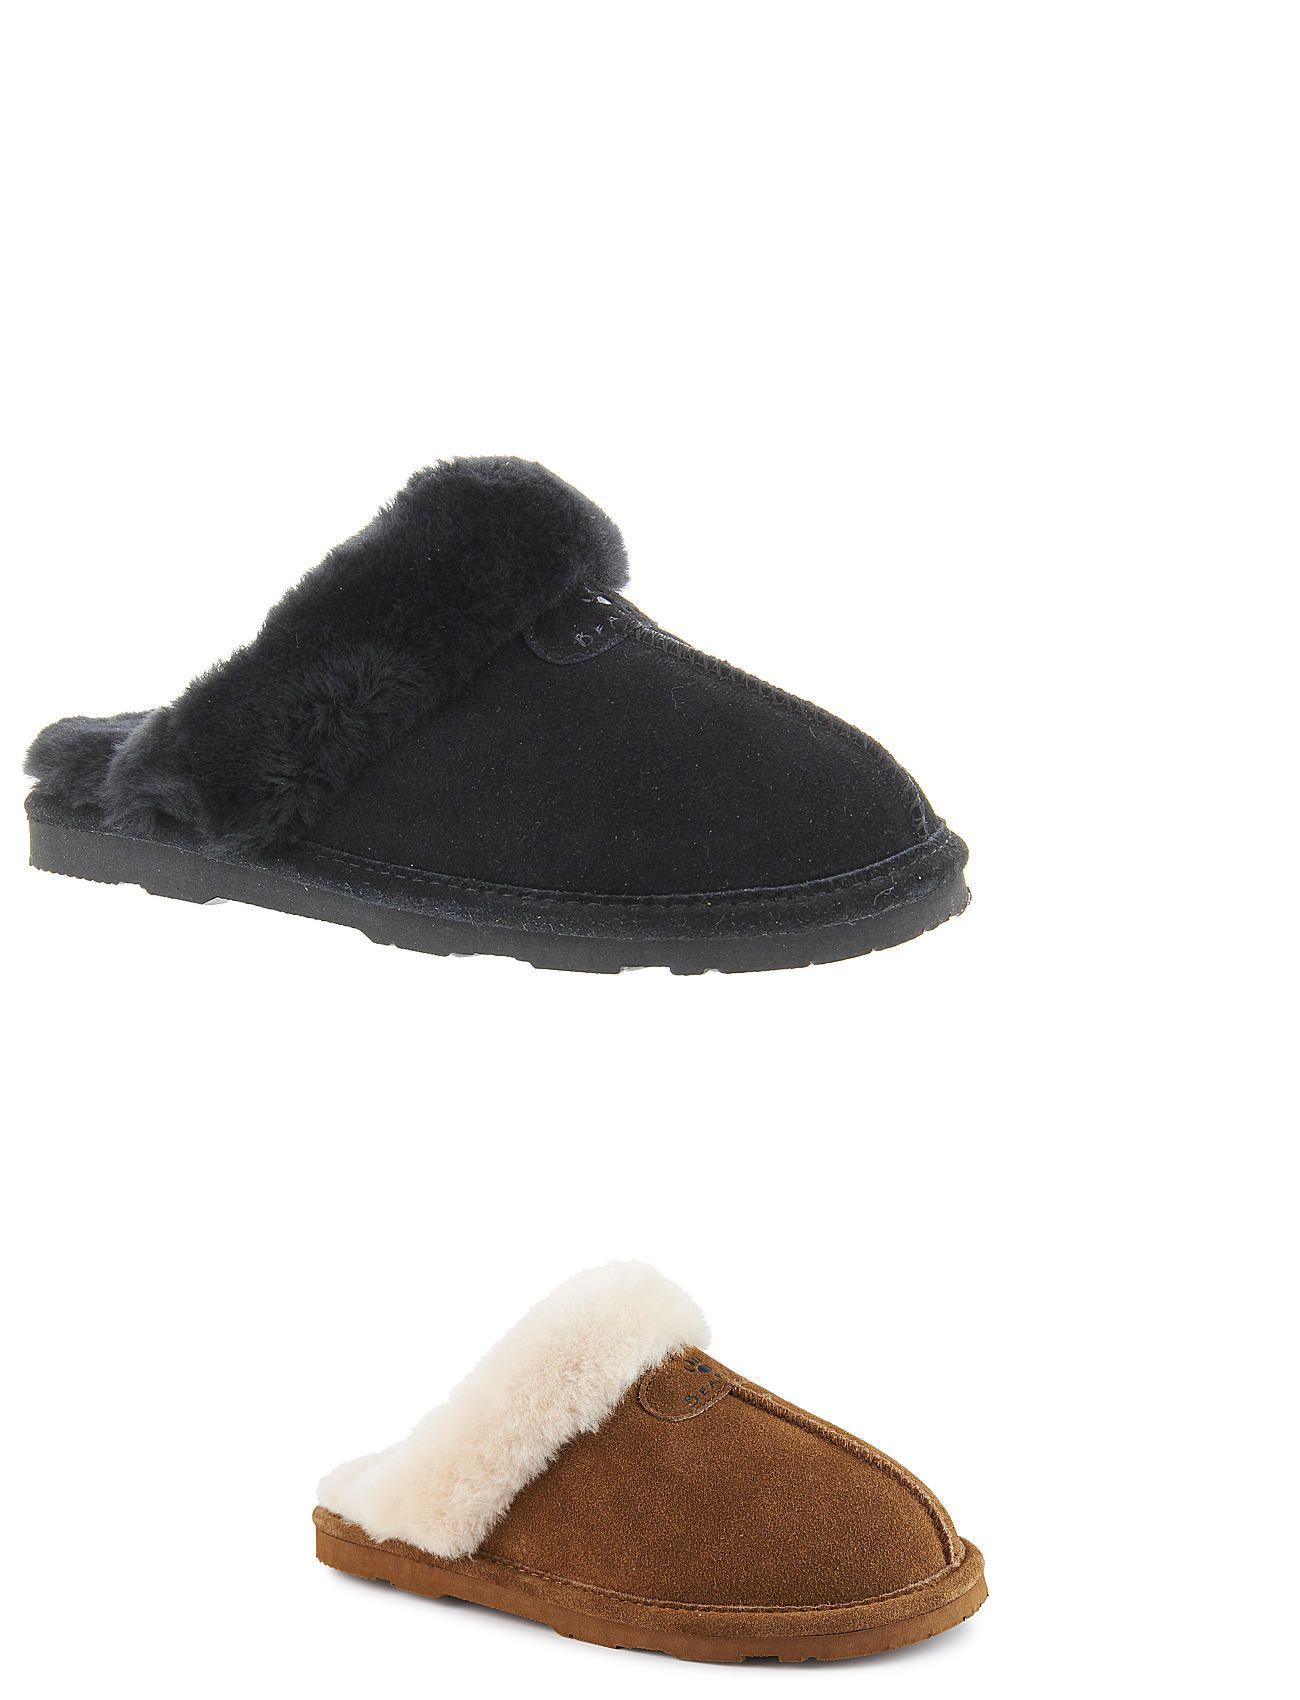 351c64a610483e Slippers 11632  Bearpaw Loki Ii Slippers Hickory Brown Black -  BUY IT NOW  ONLY   22.99 on  eBay  slippers  bearpaw  hickory  brown  black